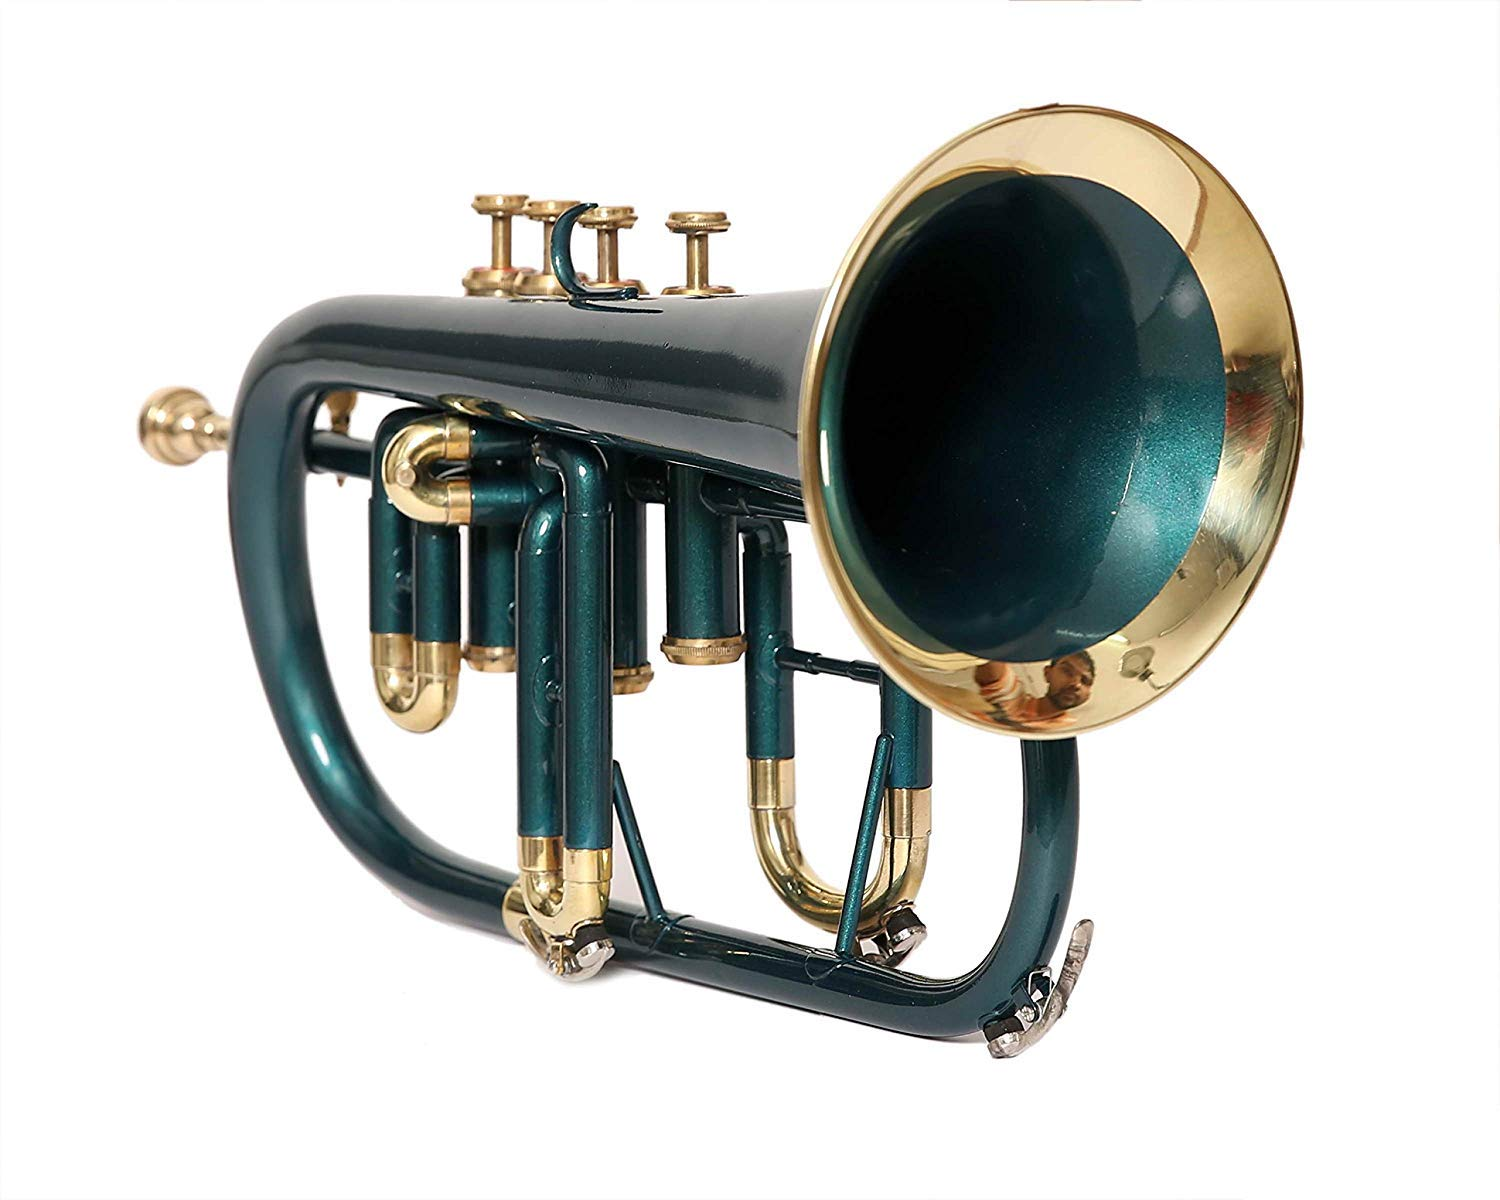 PROFESSIONALS FLUGEL HORN 4 VALVE Bb PITCH GREEN COLORED W/CASE AND MOUTHPIECE by SAI MUSICAL